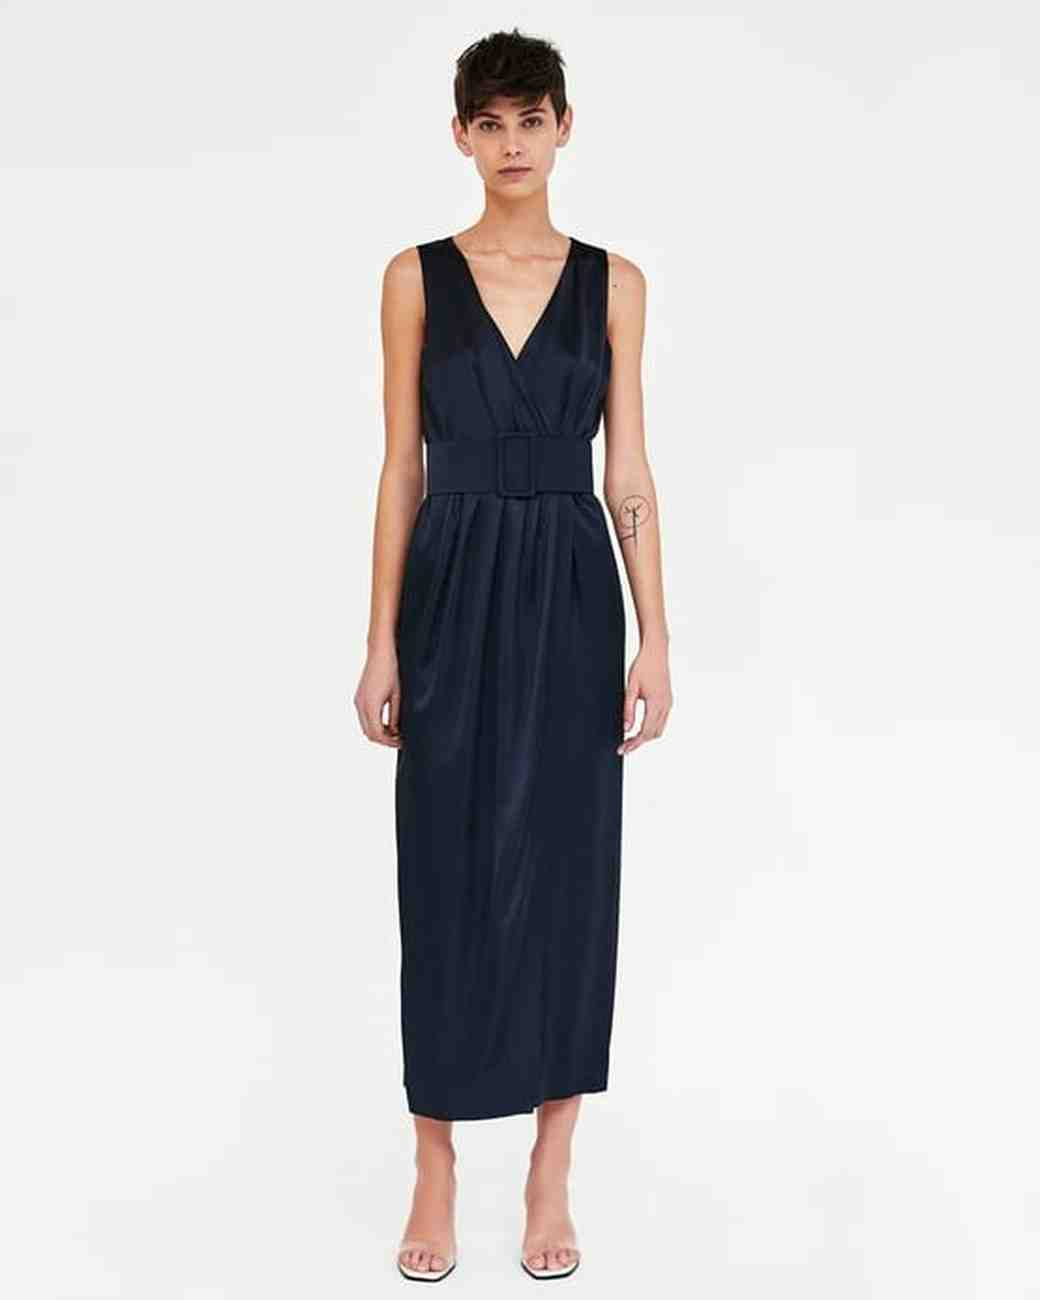 Sleeveless Zara Dress with Belt for Mother of the Bride